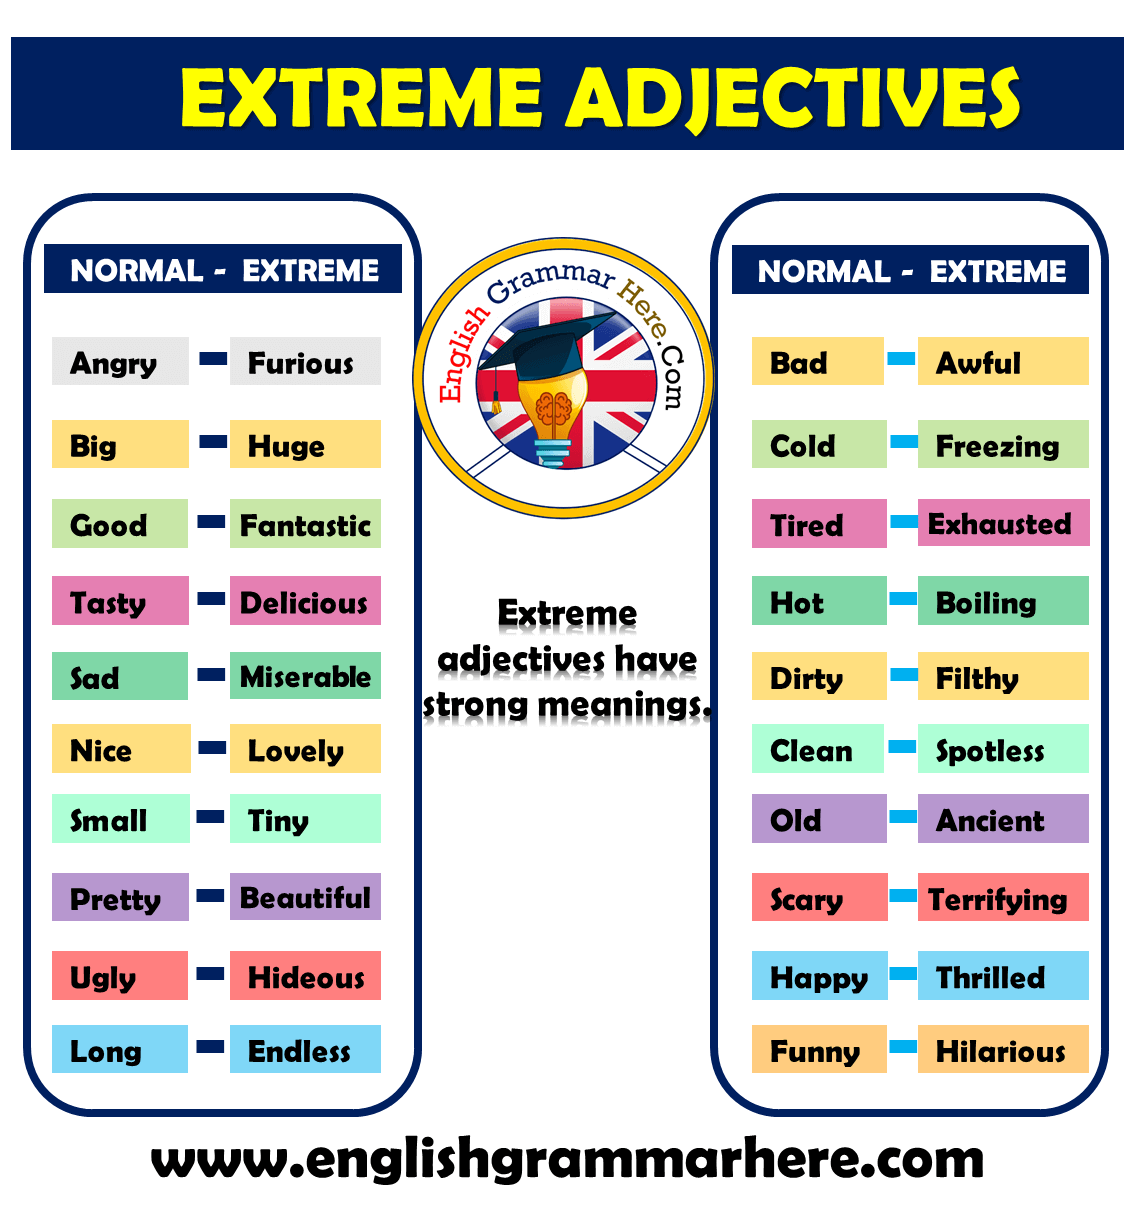 Extreme Adjectives List in English